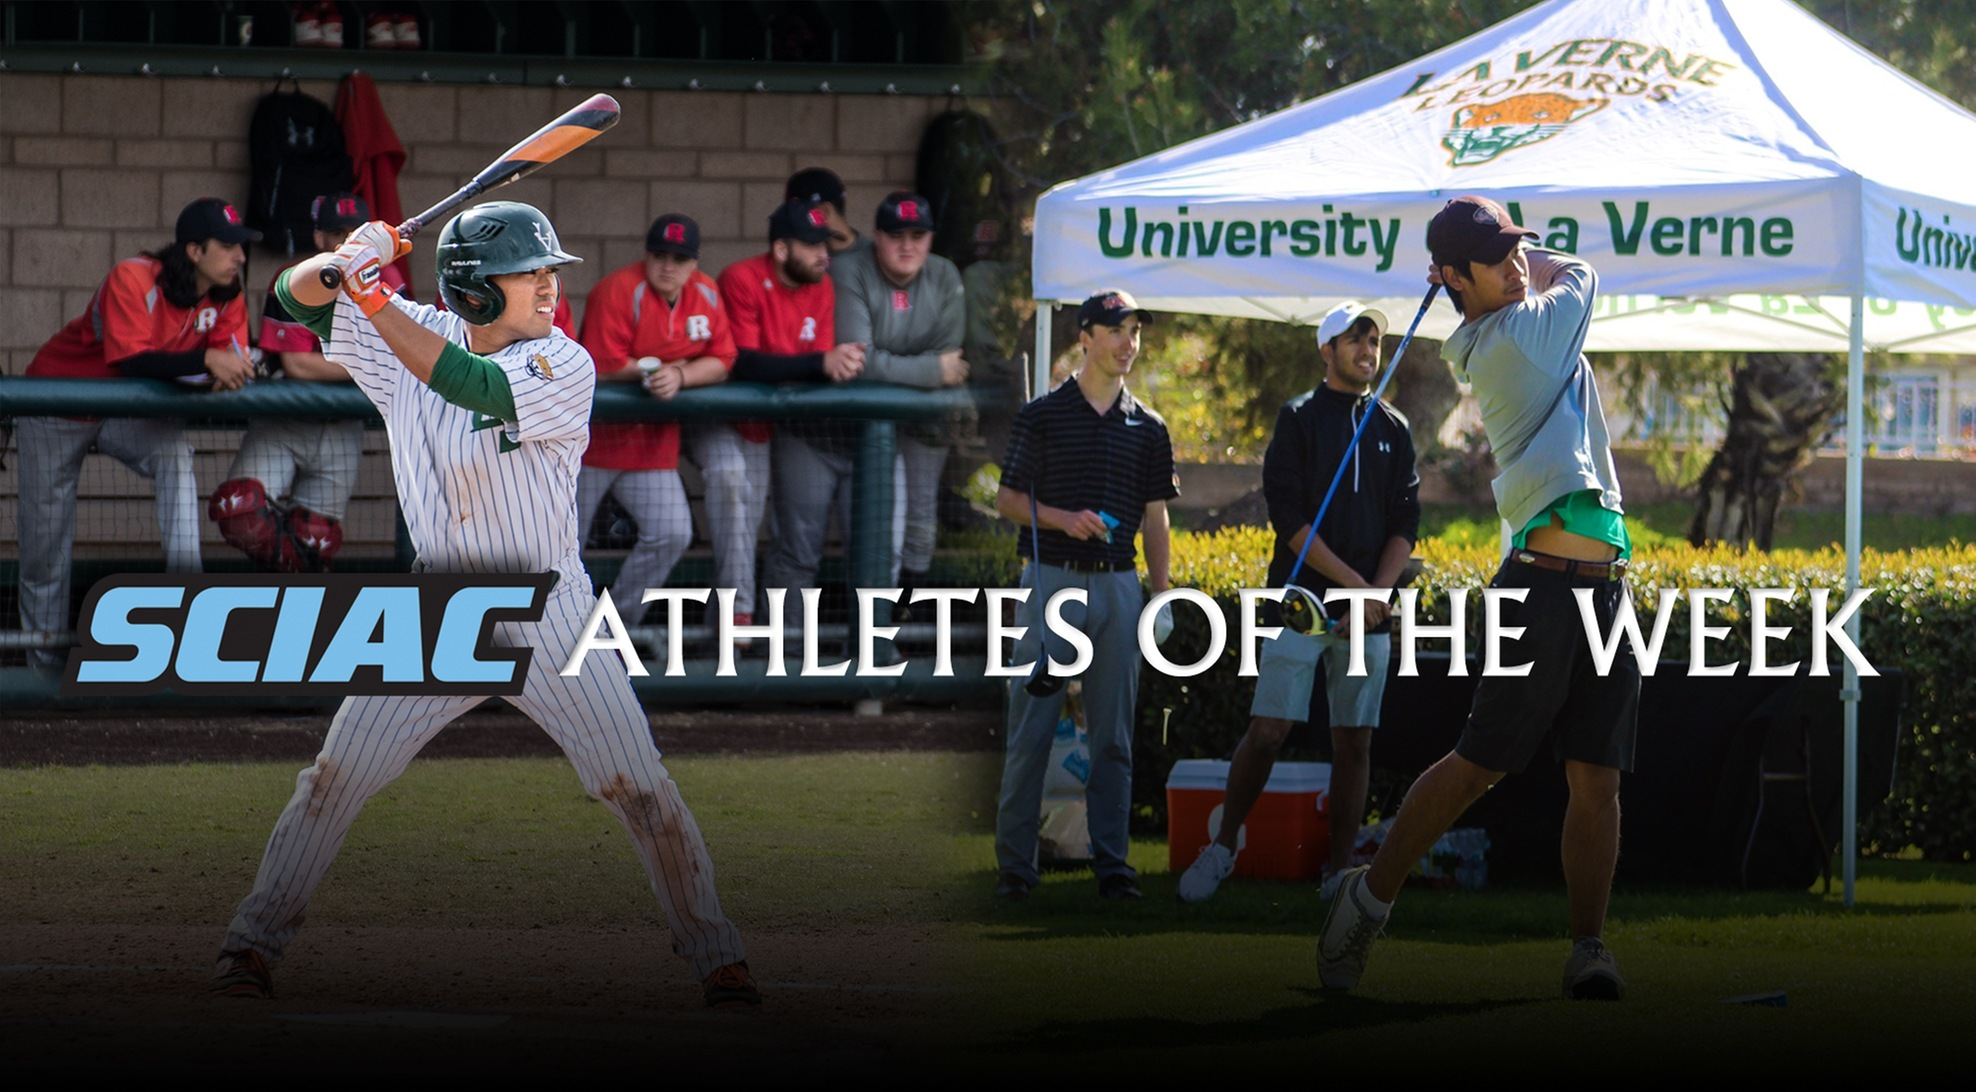 Ligot, Phanomchai tabbed SCIAC Athletes of the Week